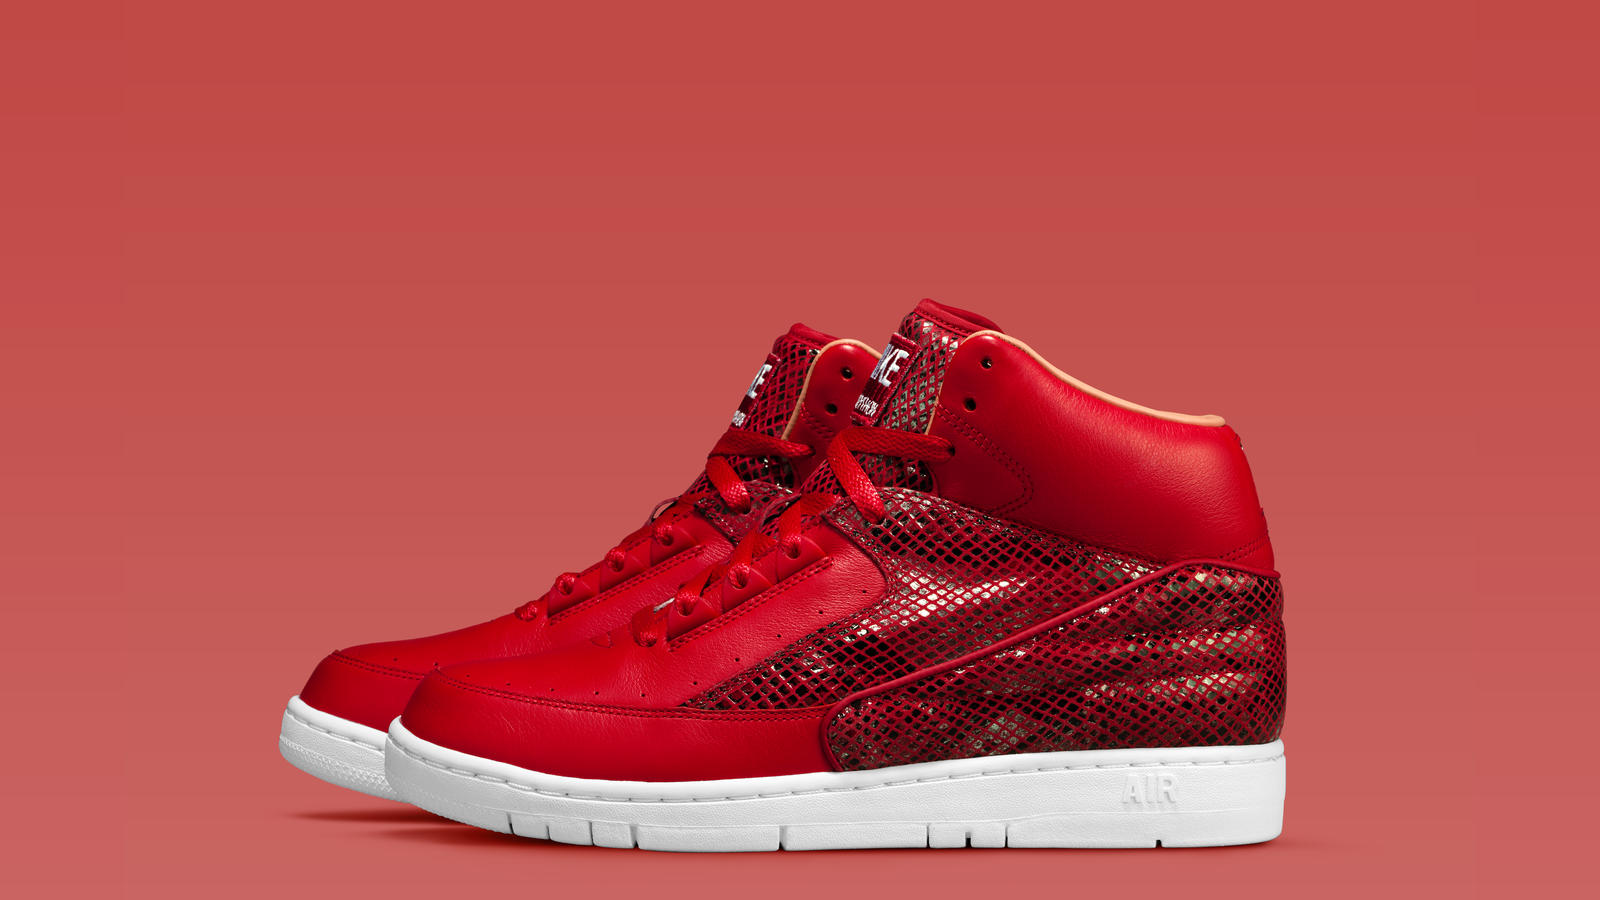 nikeairpythonluxsp_red_red_side